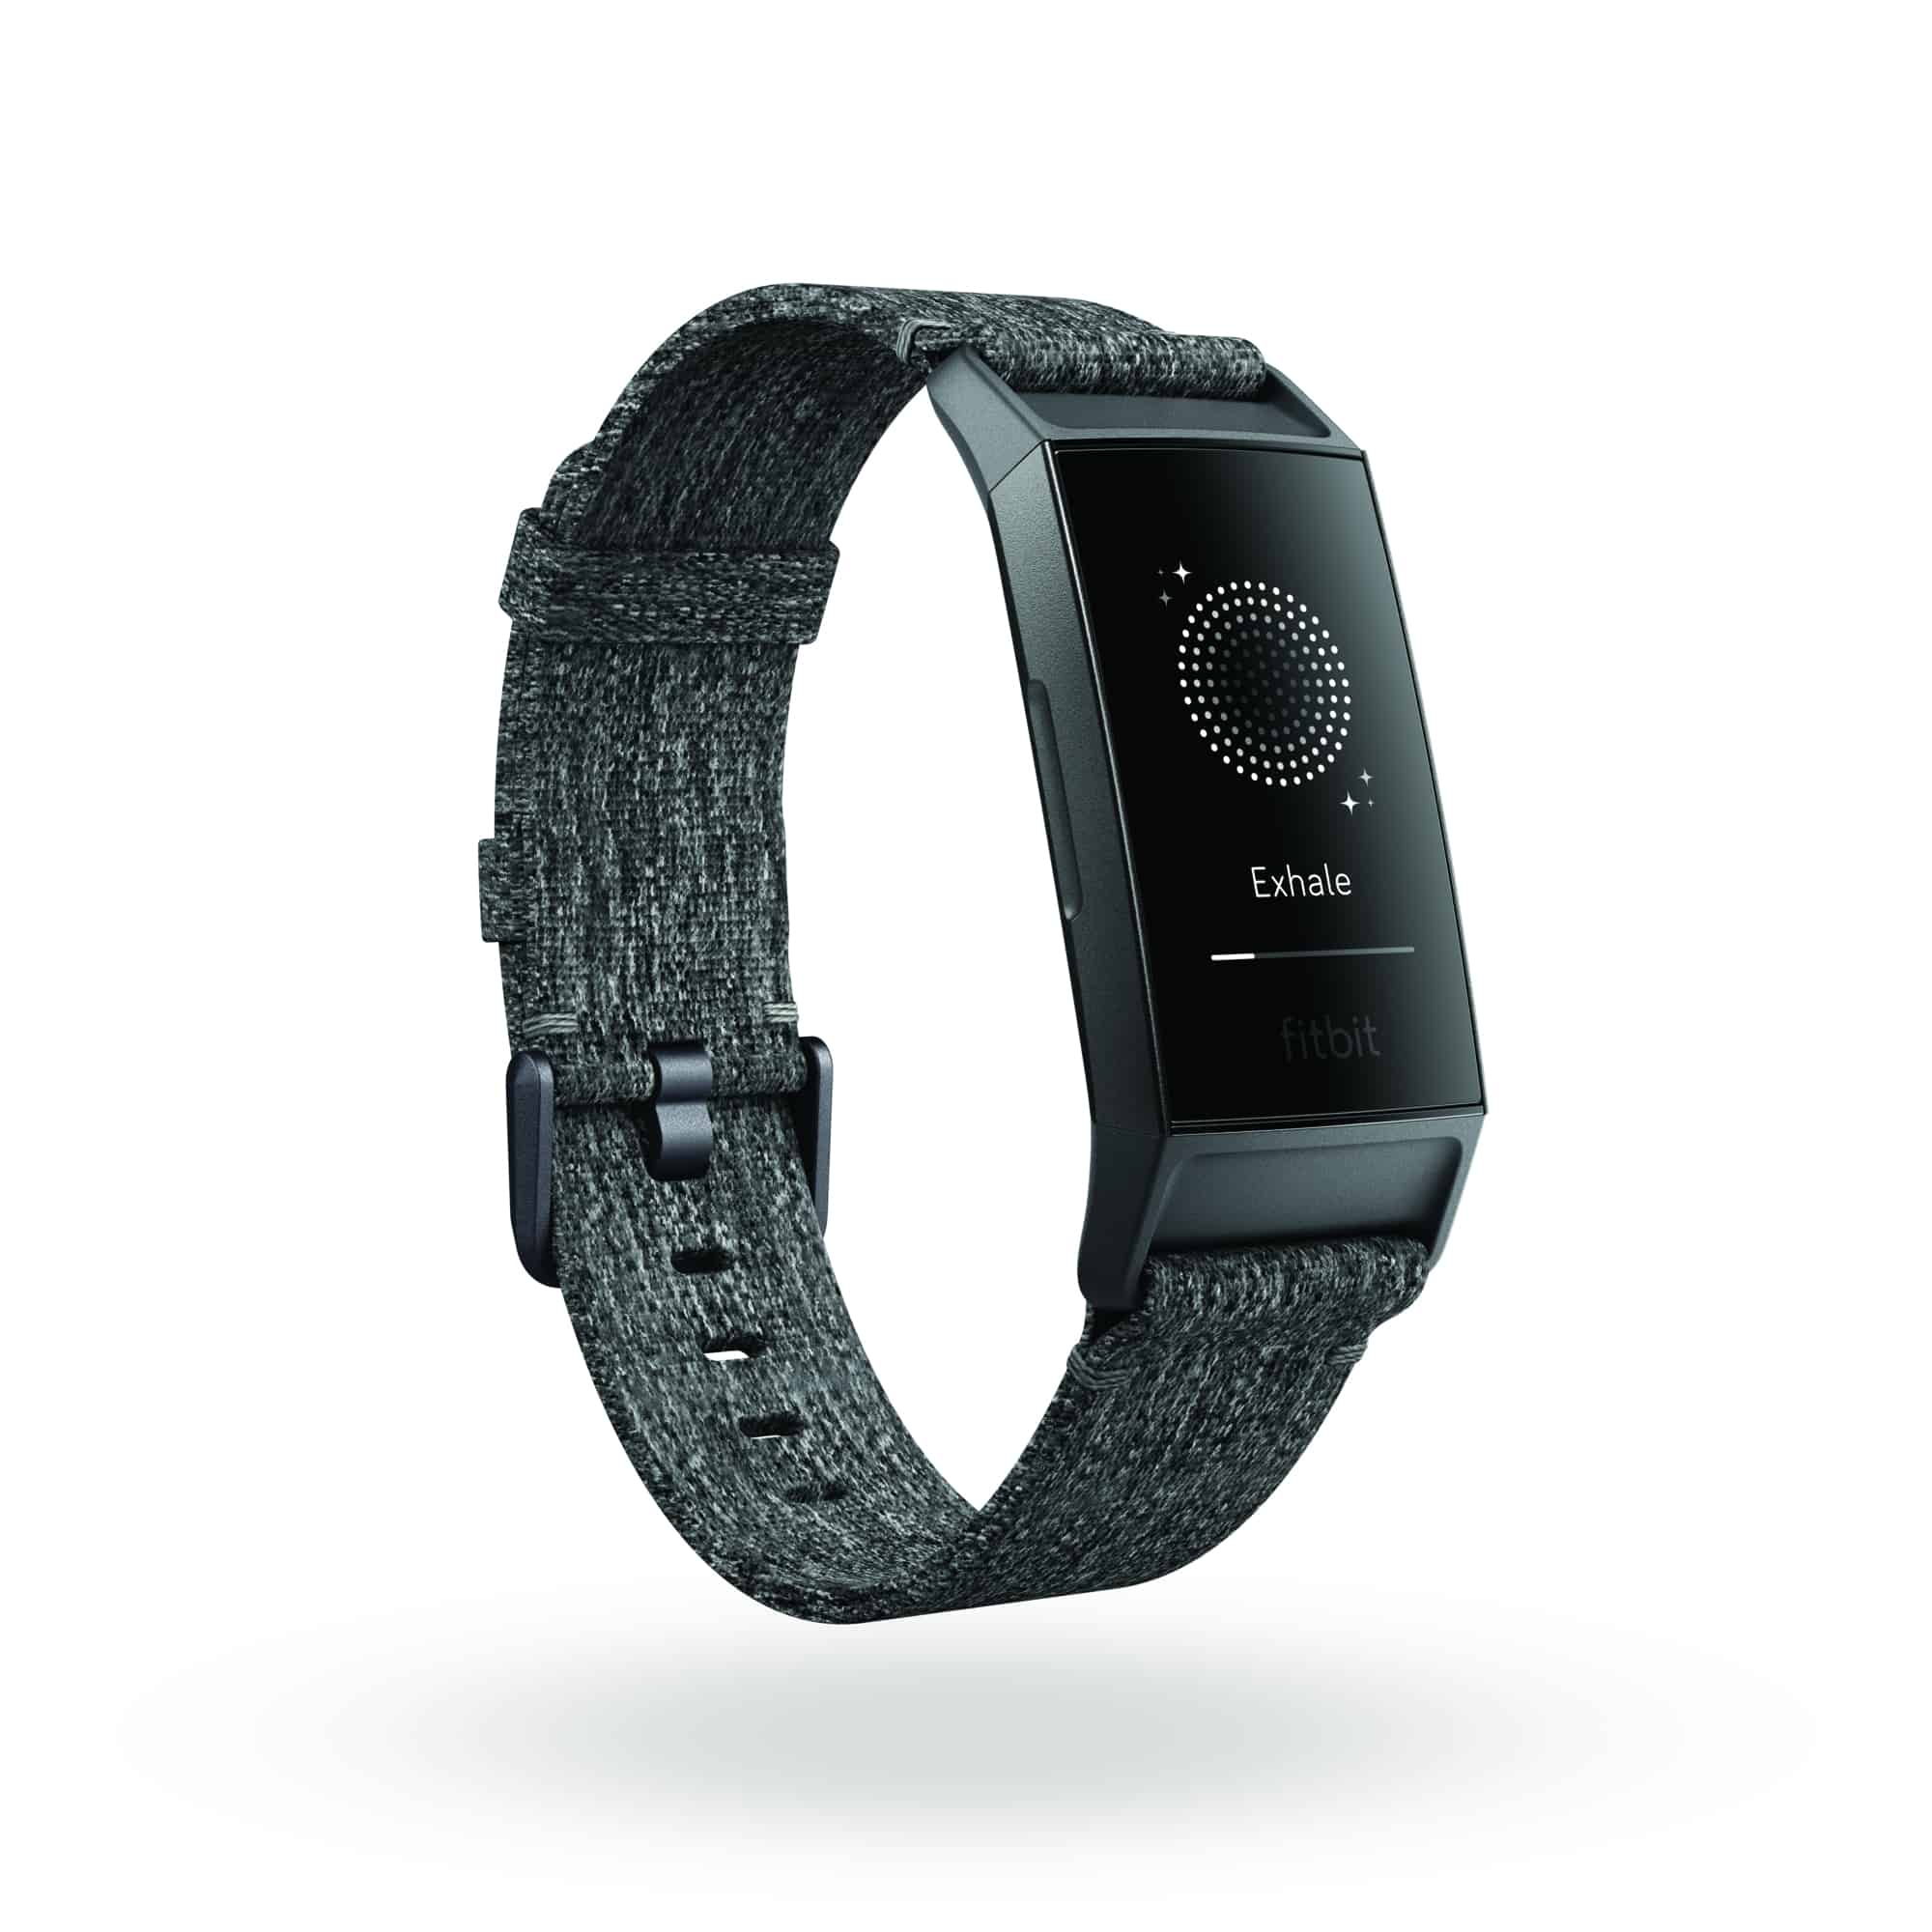 Fitbit Charge 3 3QTR Woven Charcoal Graphite Exhale Shadow